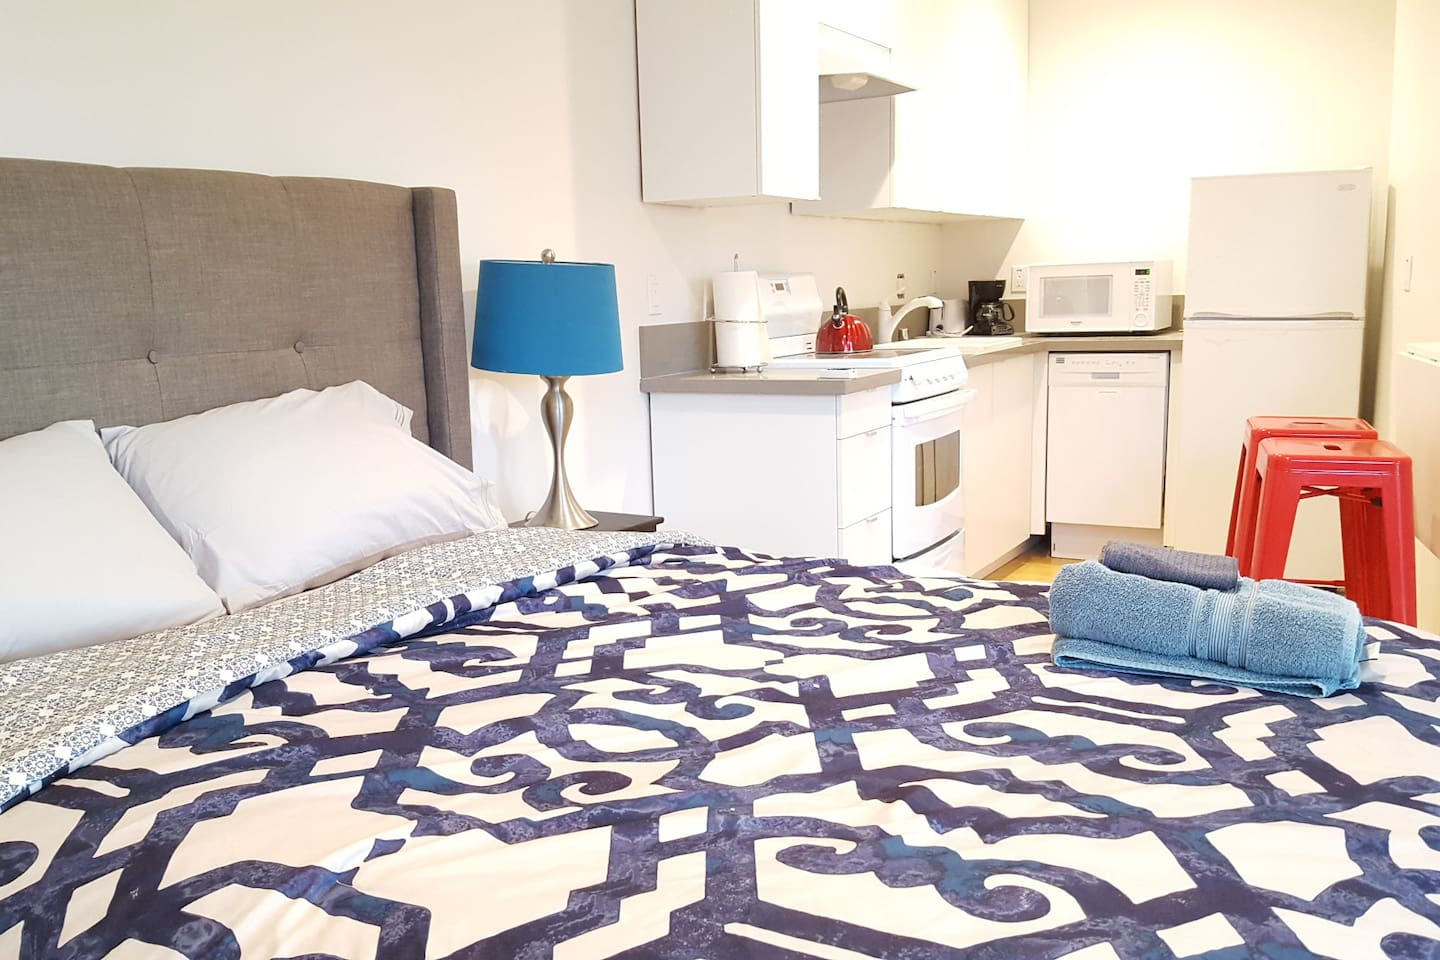 centrally located west la studio 201 apartments for rent in los